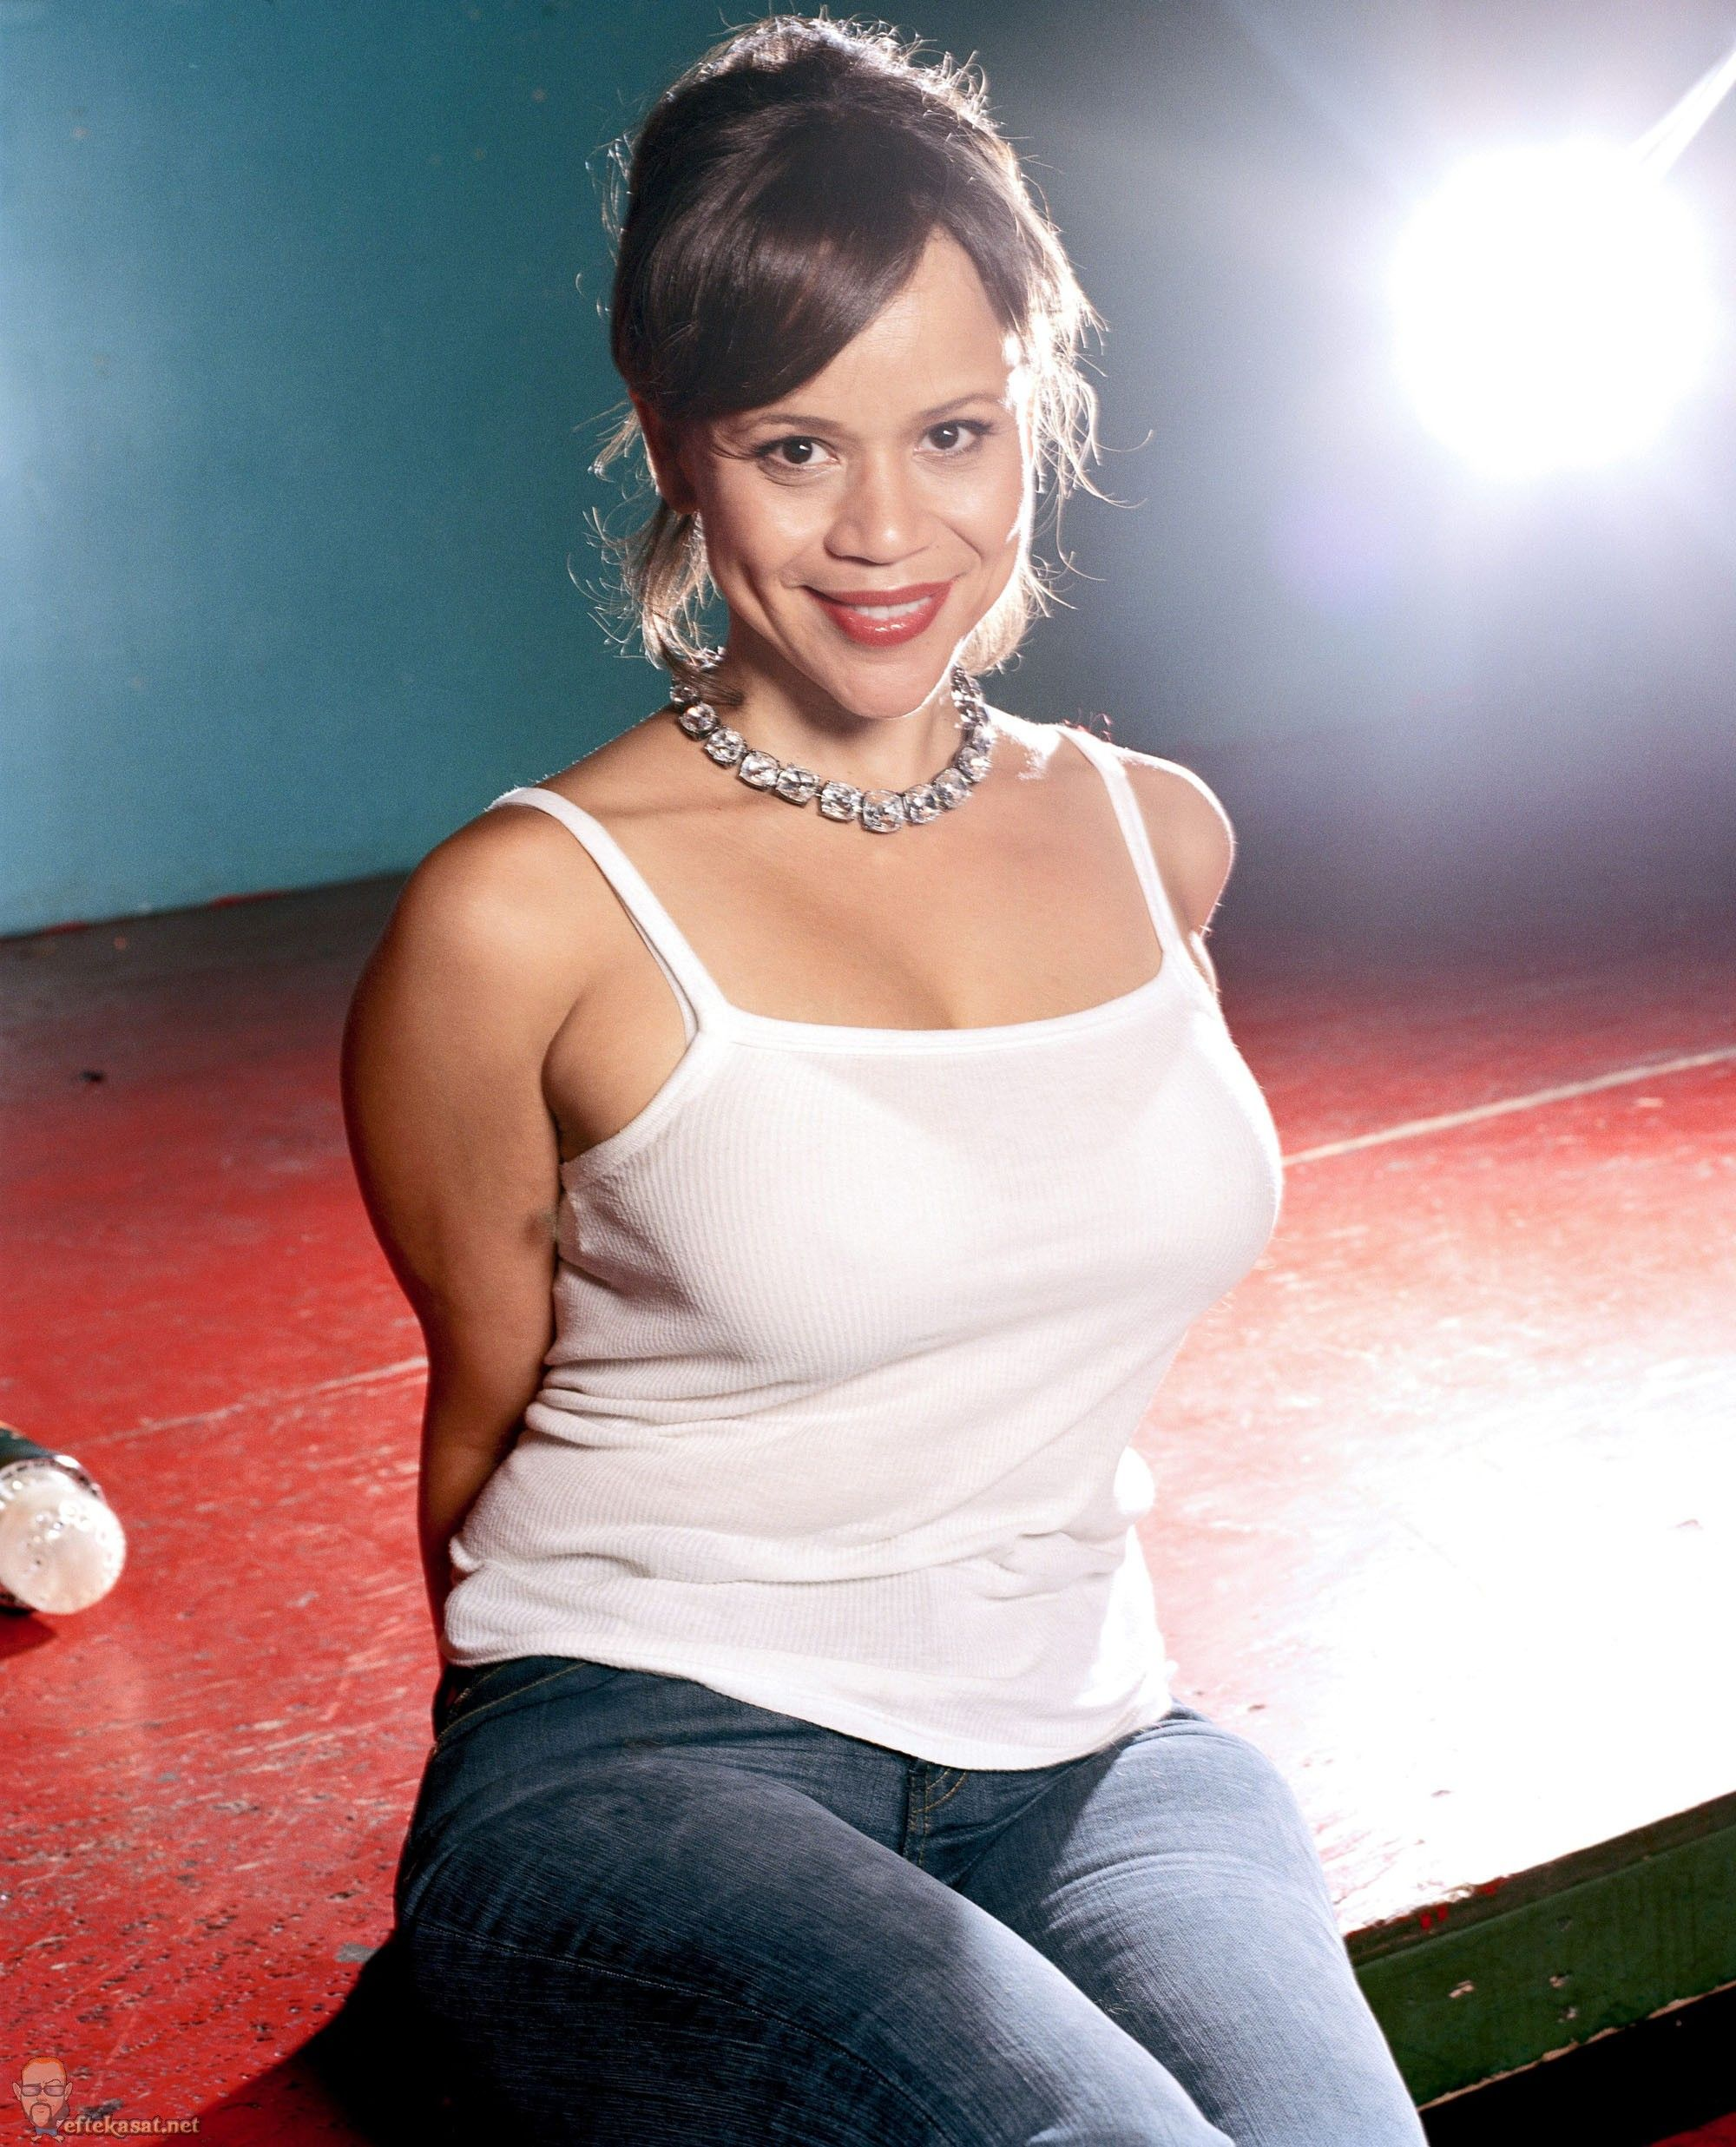 rosie perez night on earth